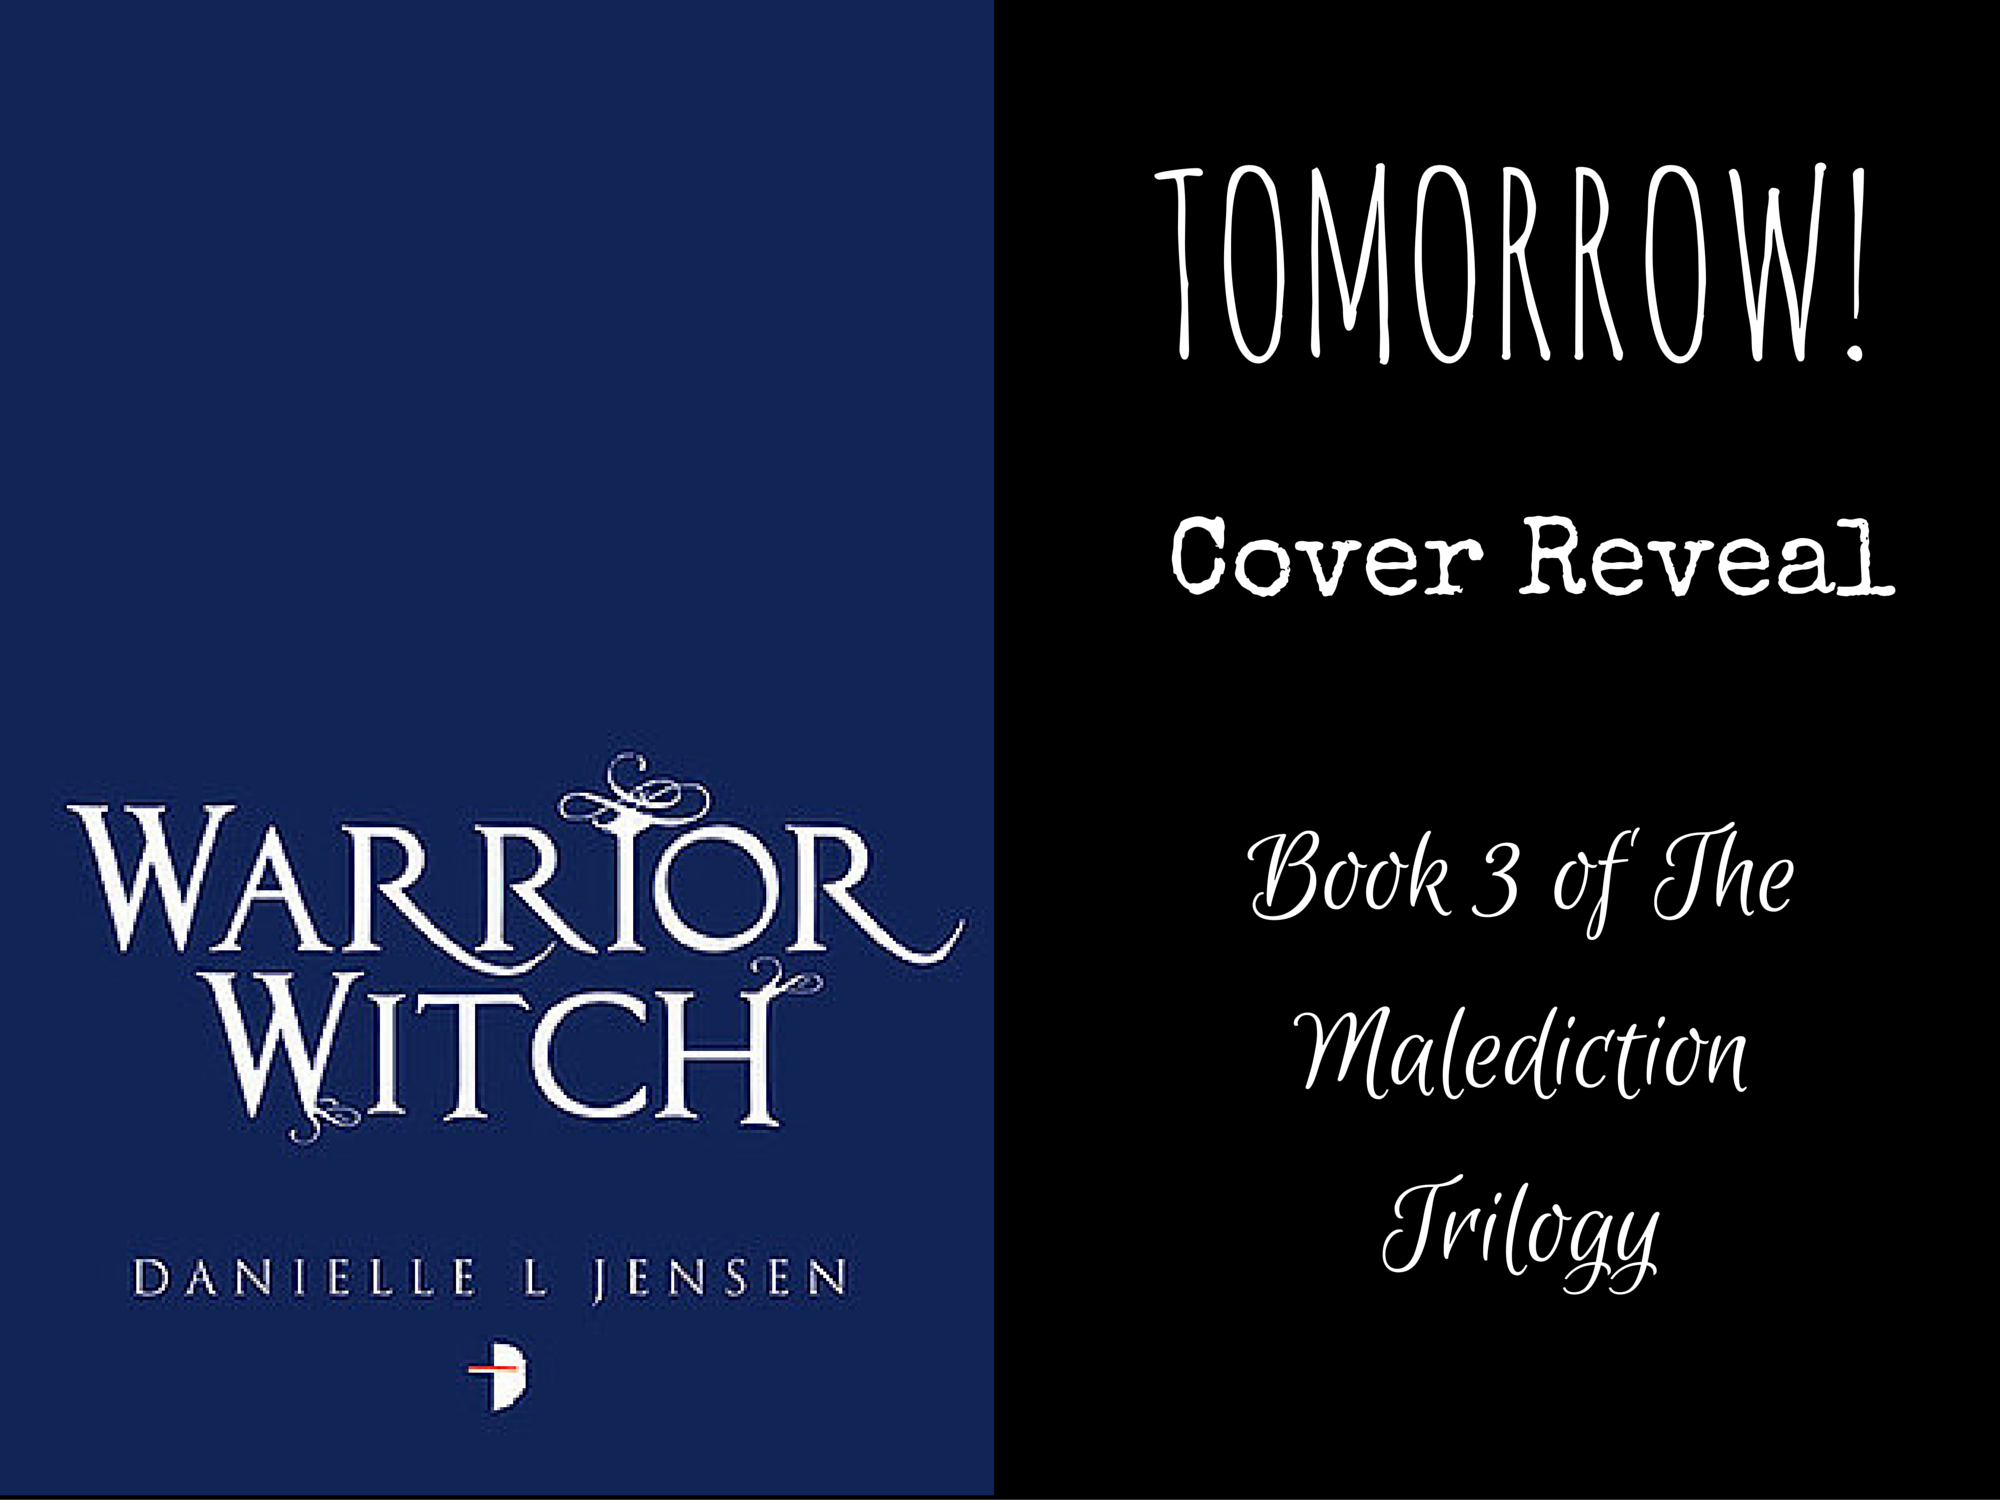 Cover Reveal Promo